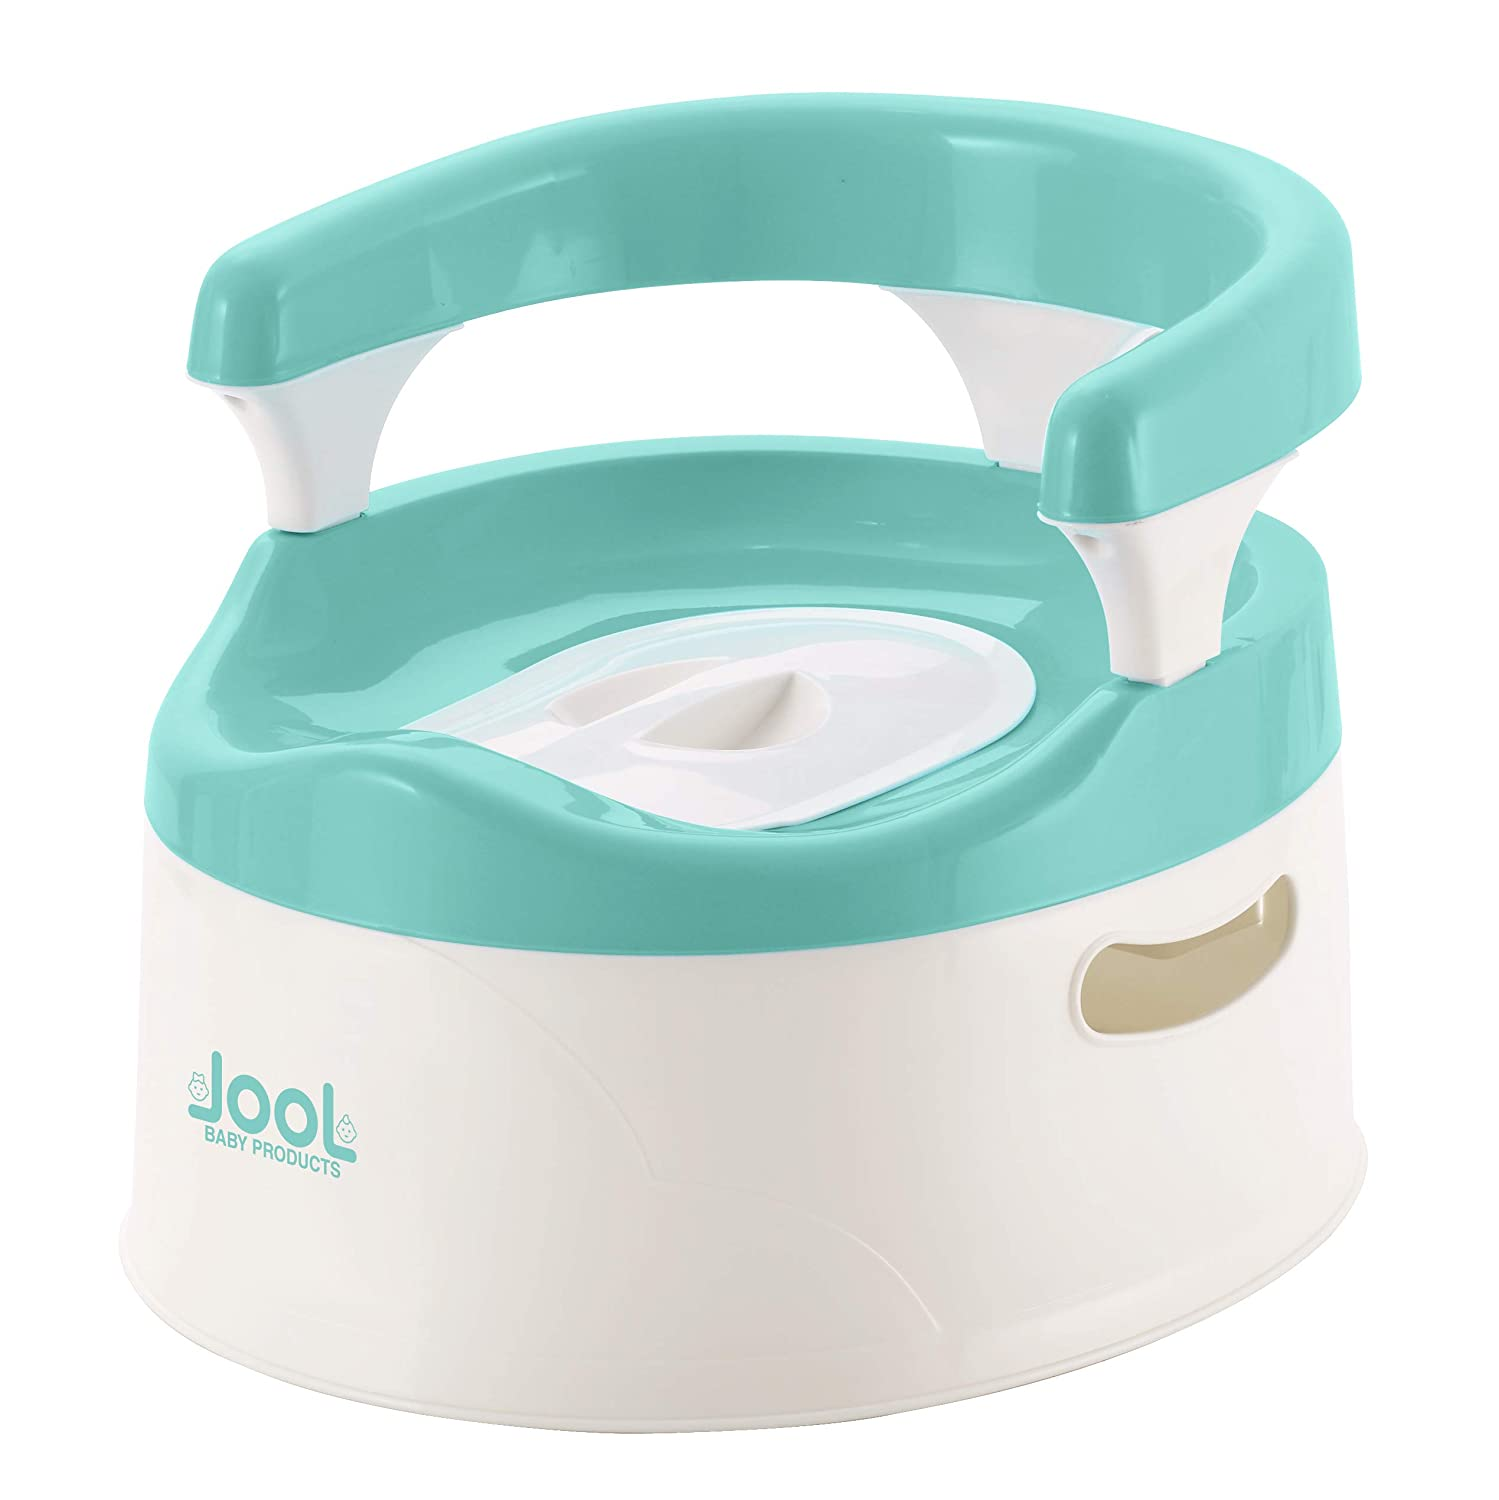 Child Potty Training Chair for Boys and Girls, Handles & Splash Guard - Comfortable Seat for Toddler- by Jool Baby